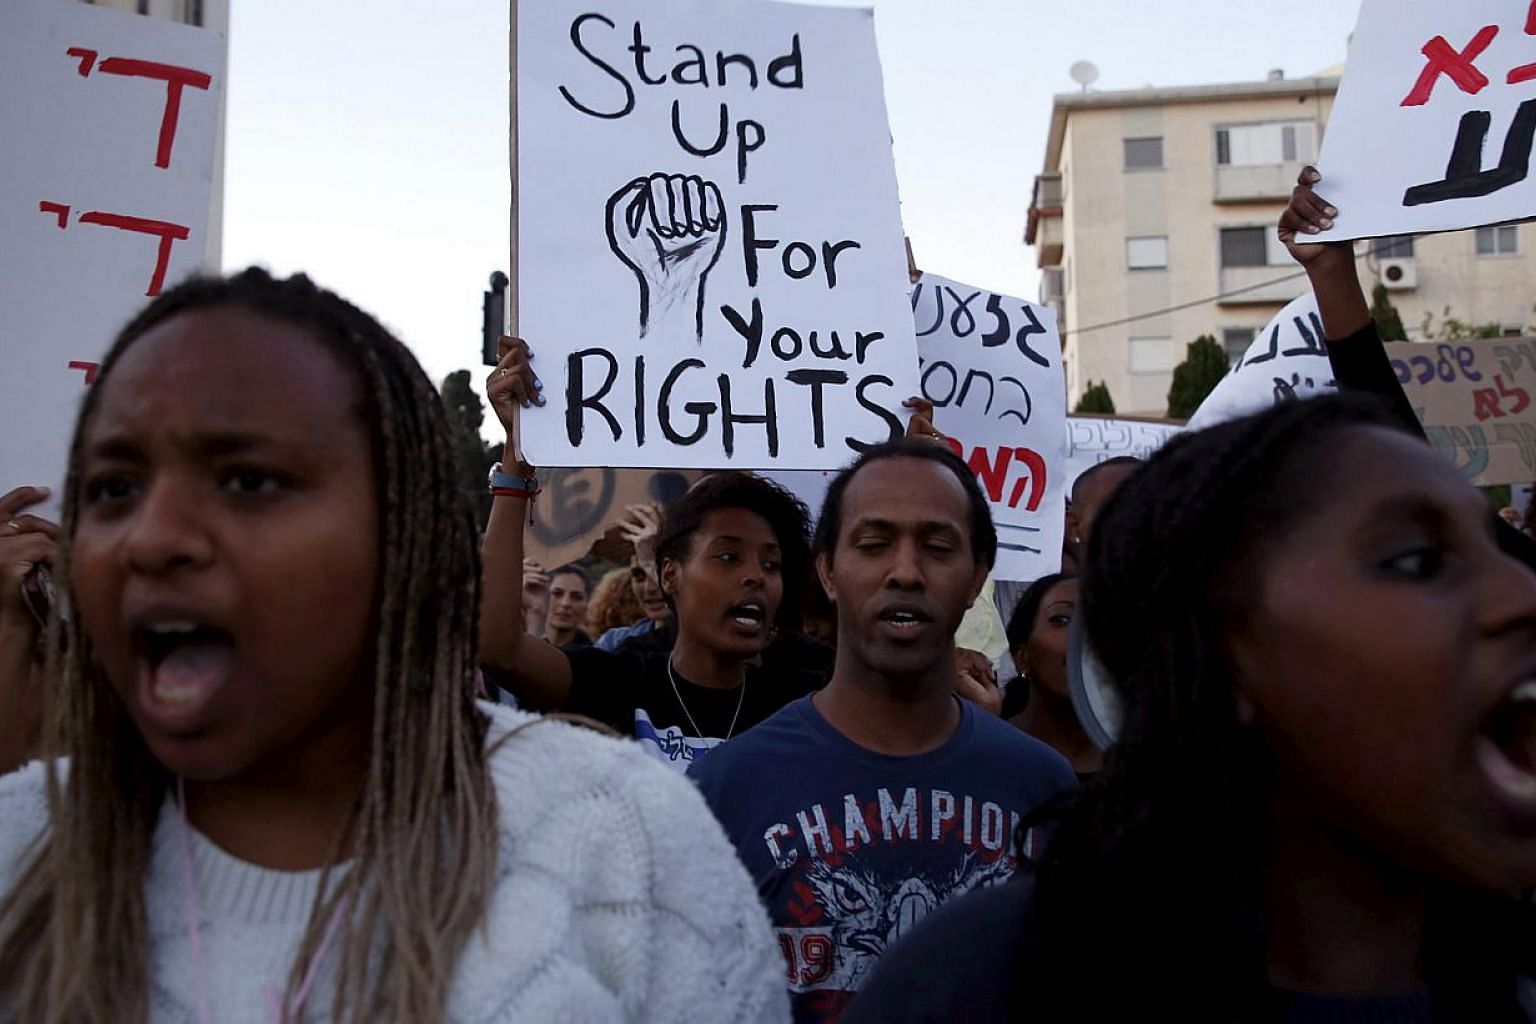 Israelis of Ethiopian descent hold signs during a protest against police brutality and racism in the northern city of Haifa, Israel May 12, 2015. -- PHOTO: REUTERS